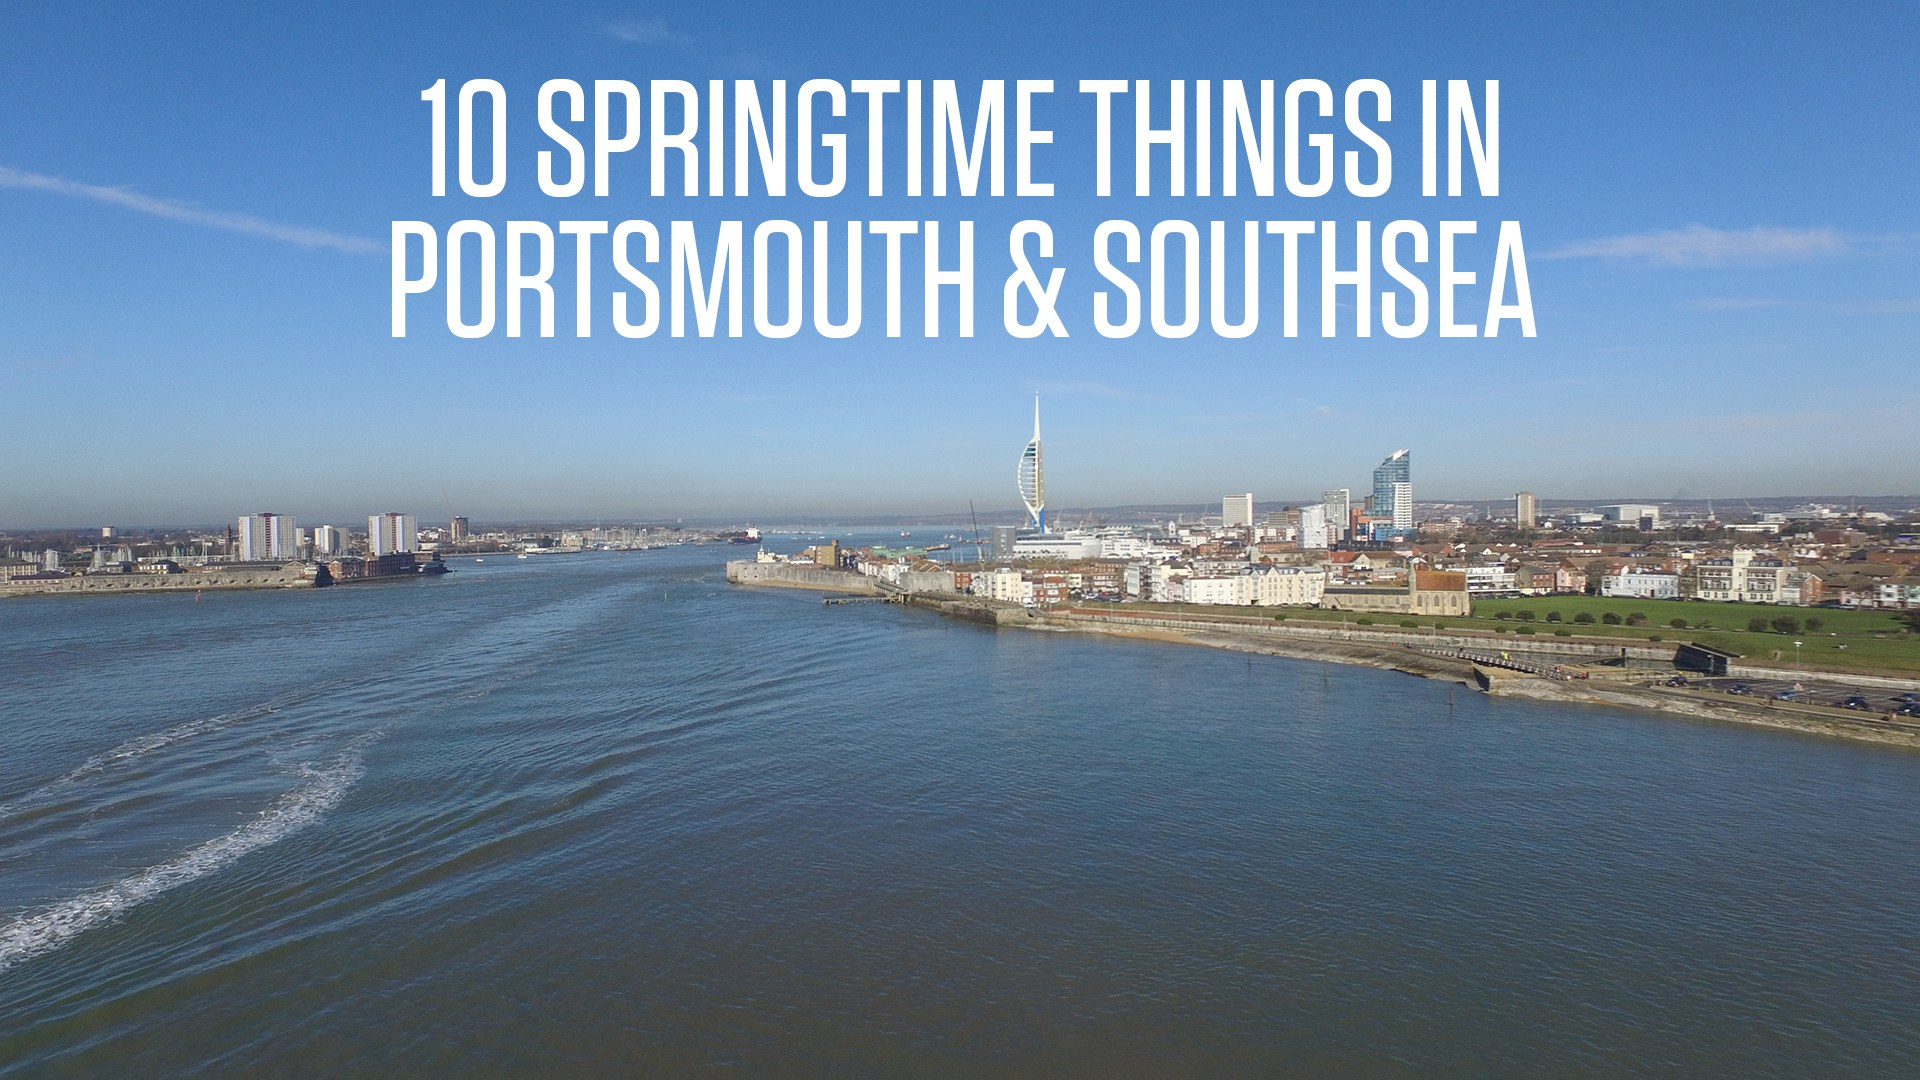 10-Springtime-Things-in-Portsmouth-Southsea.jpg